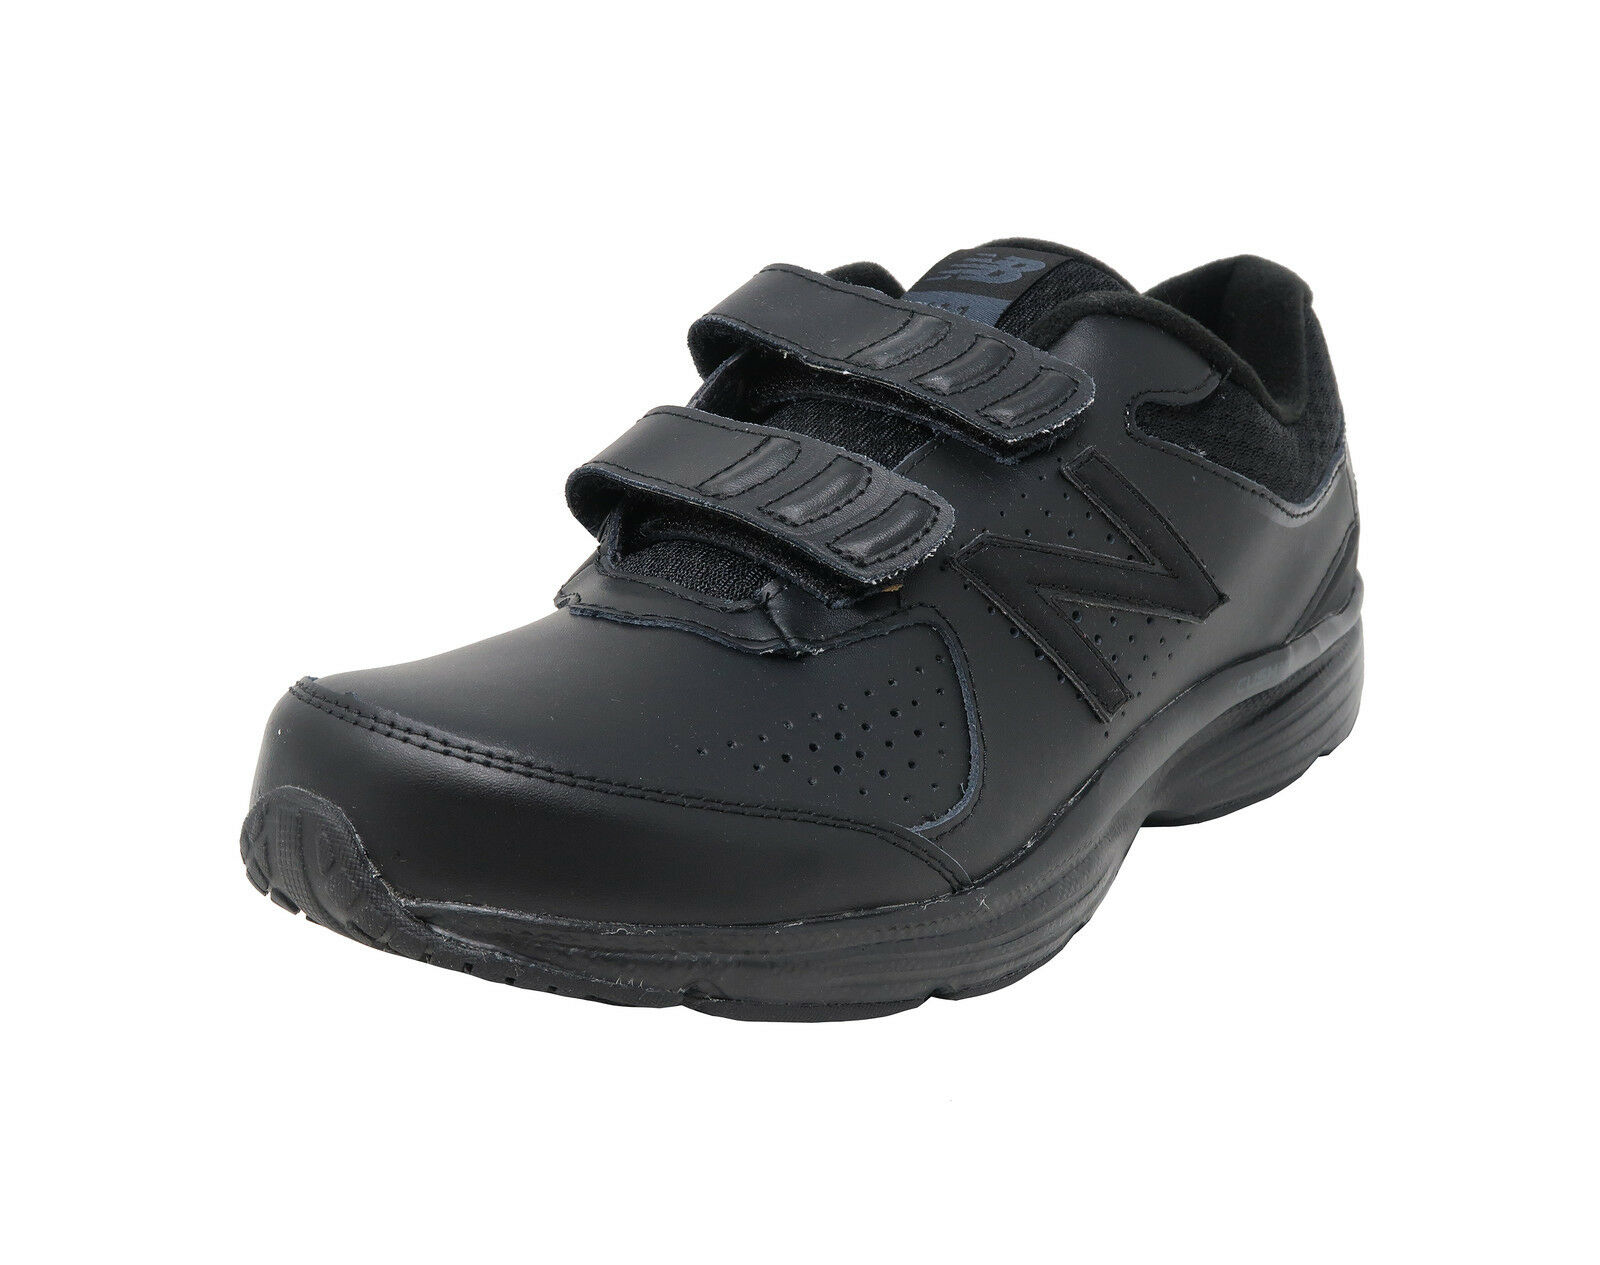 New Balance Mens MW411HK2 Walking shoes Black Cushion Comfort Medium Width